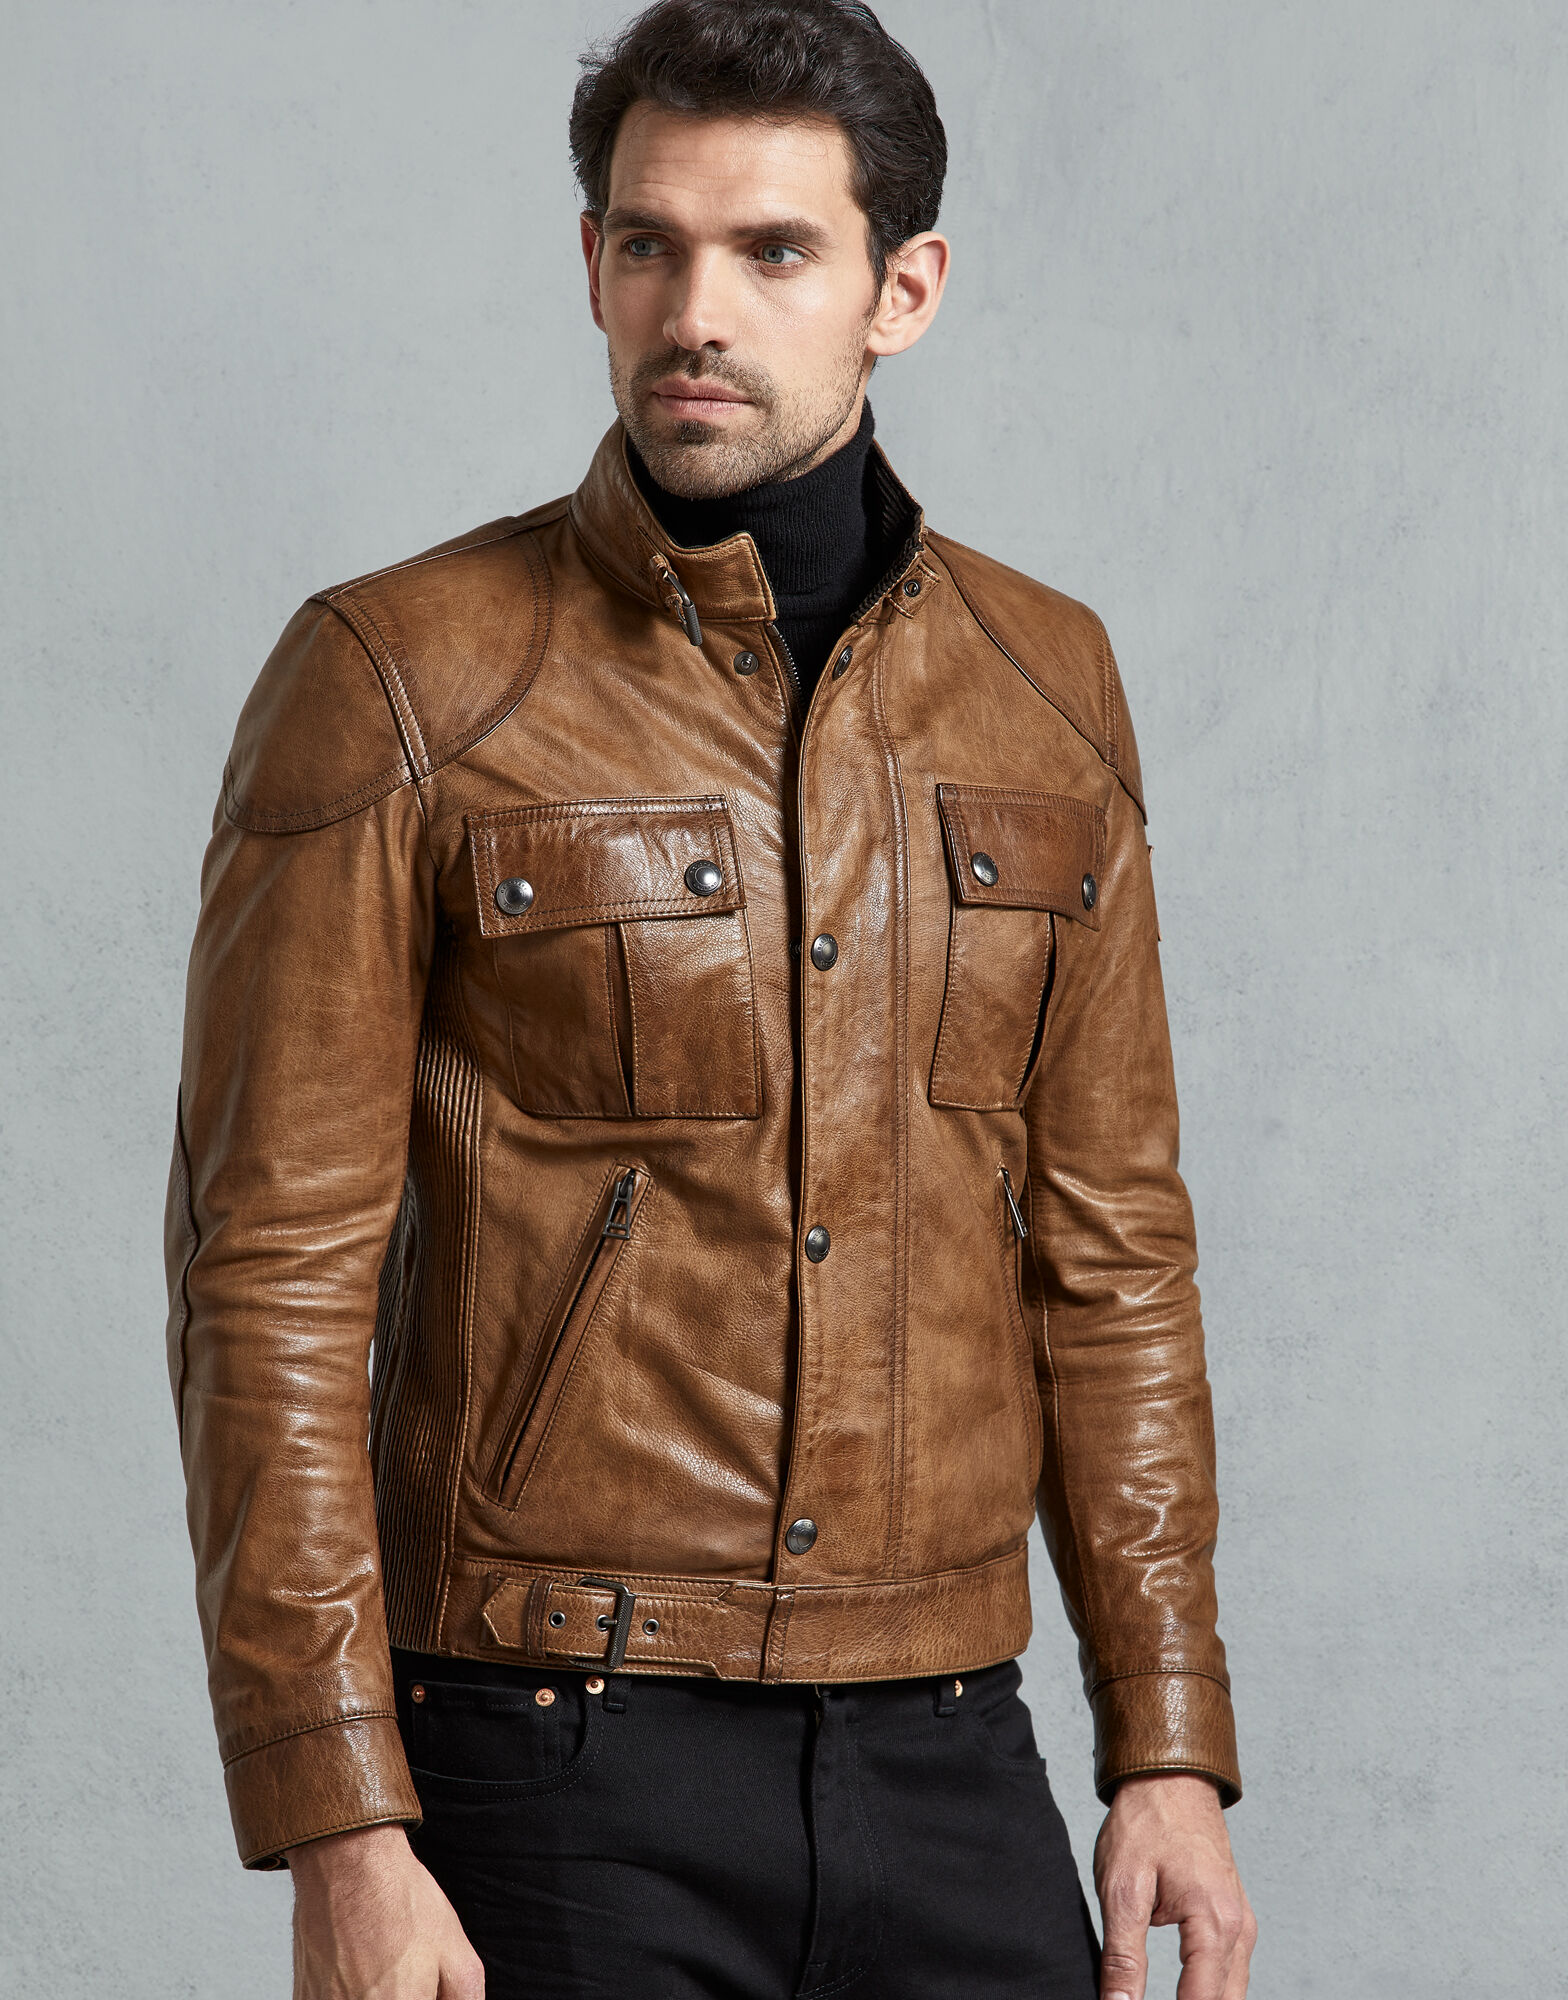 It's just a photo of Hilaire Belstaff Roadmaster Gold Label